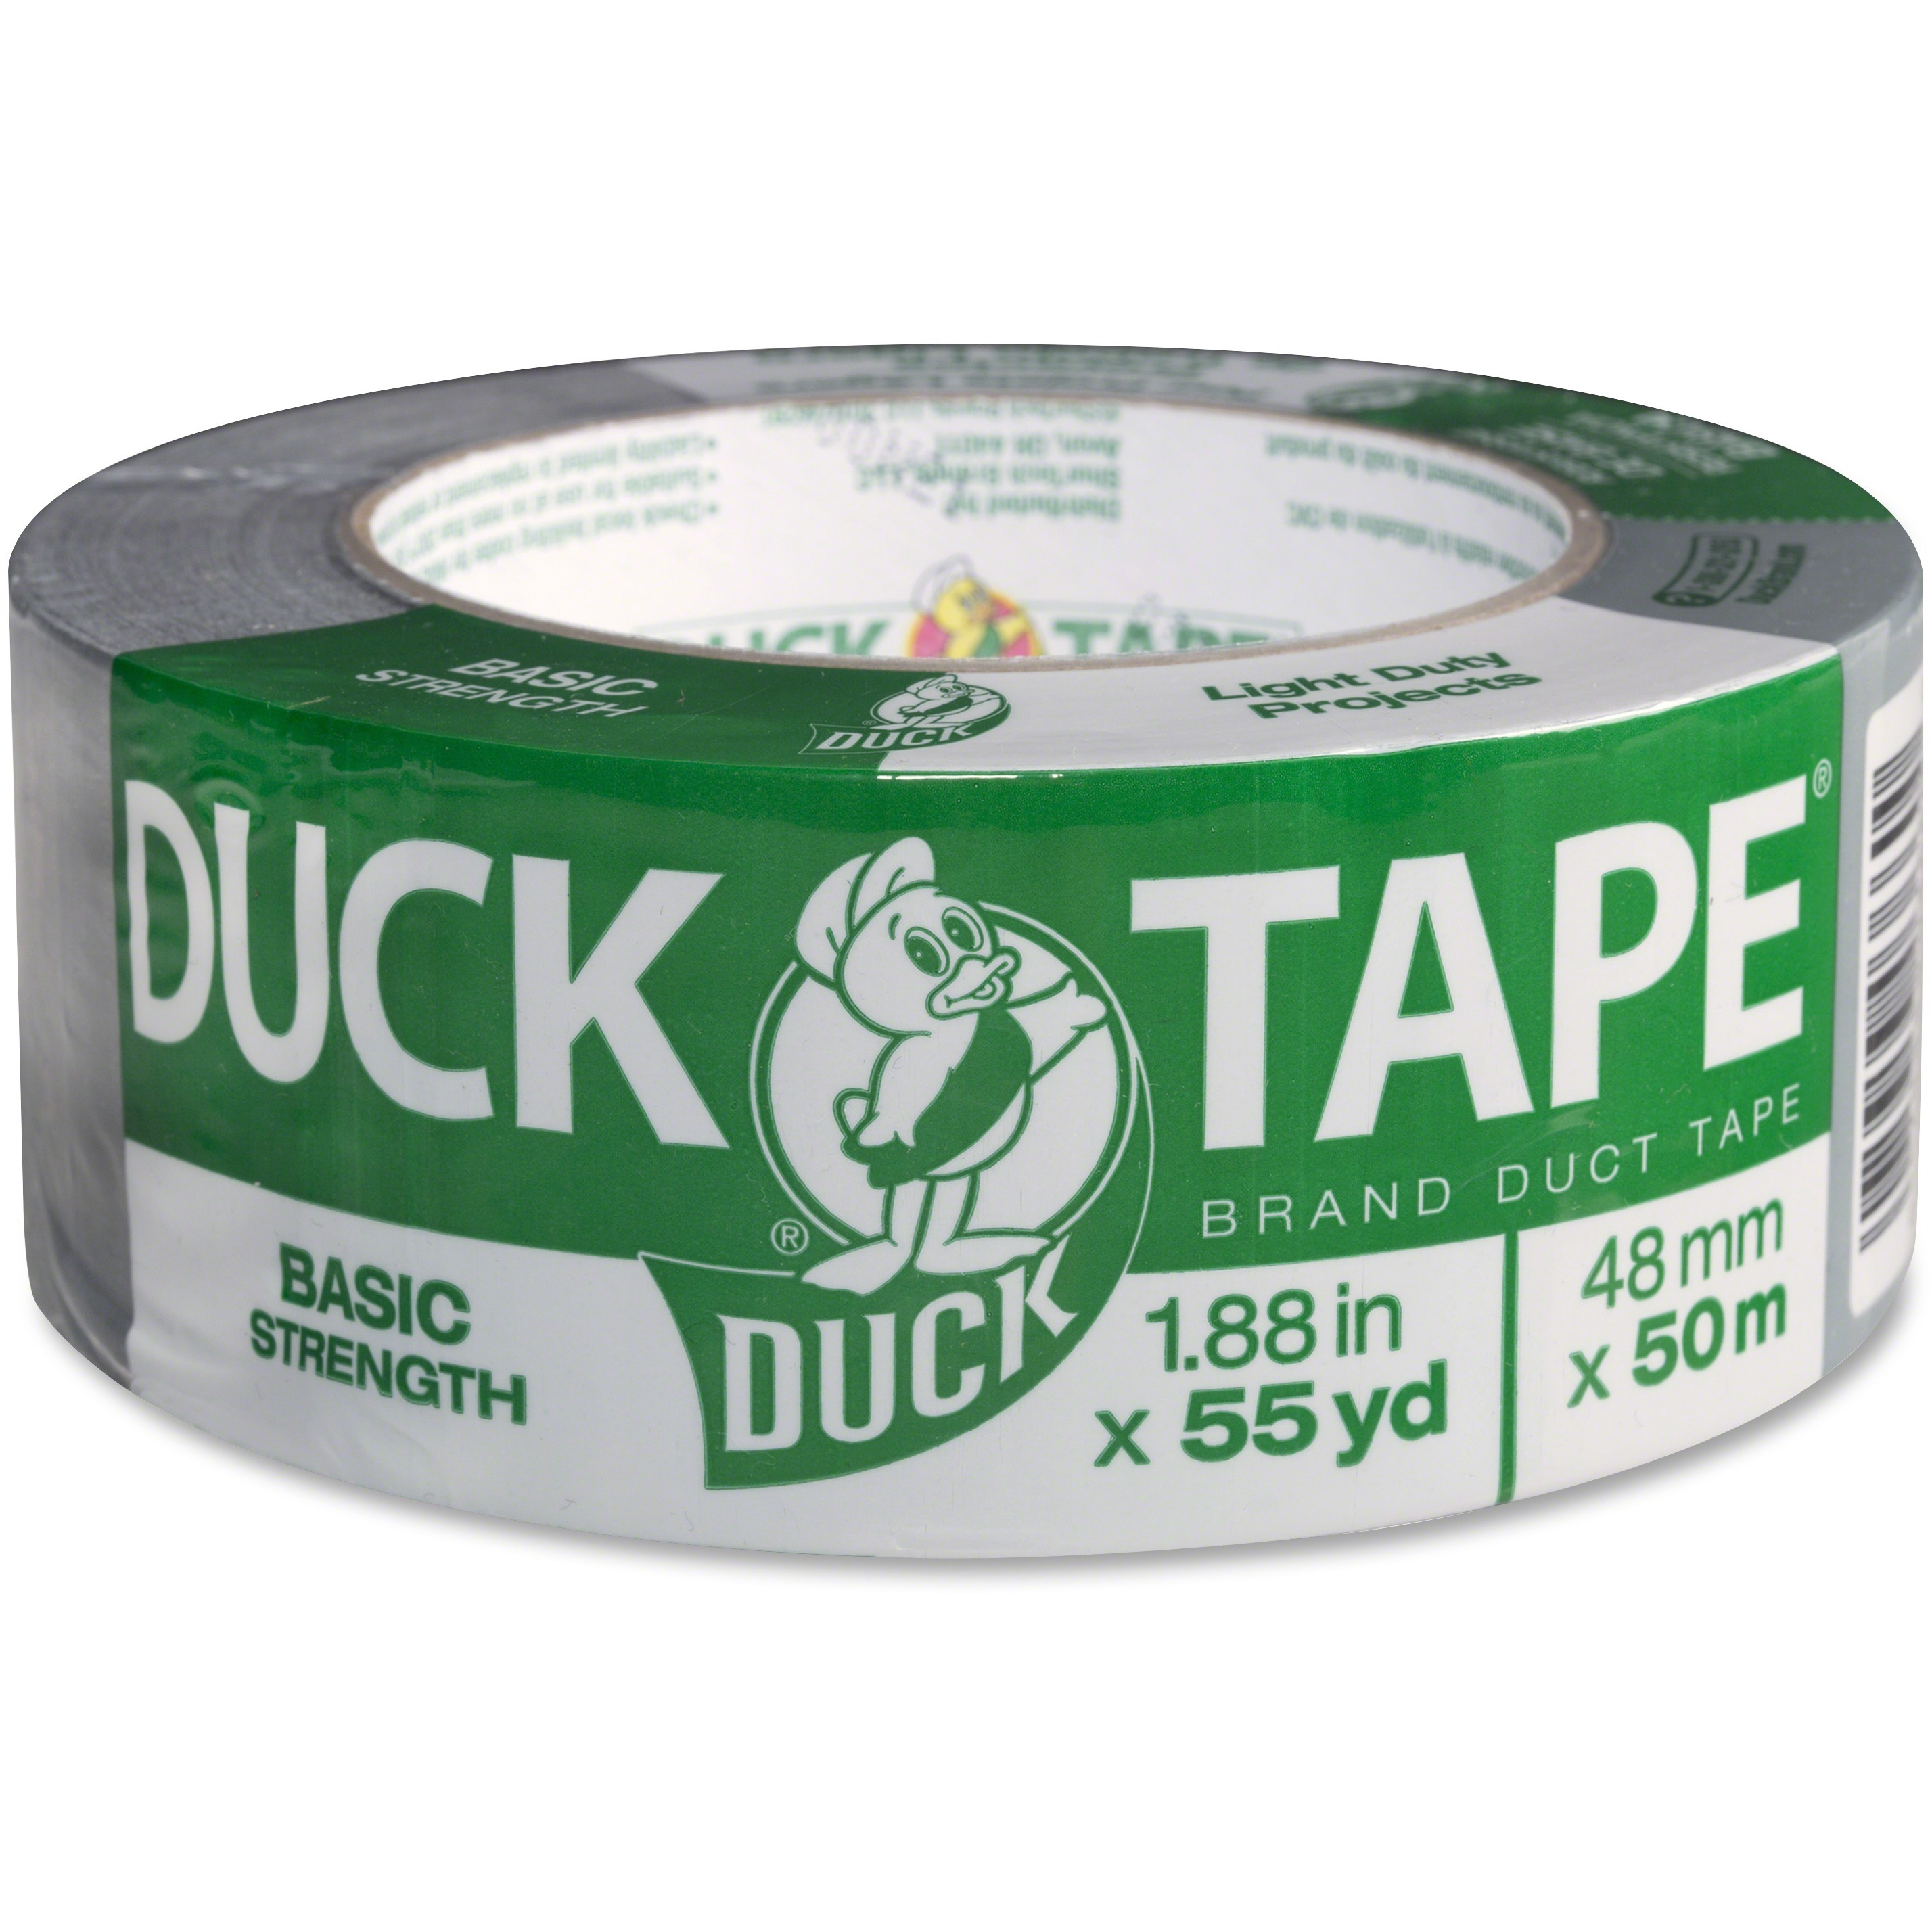 Duck Brand Basic Strength Duct Tape, 1.88 in. x 55 yd., Gray